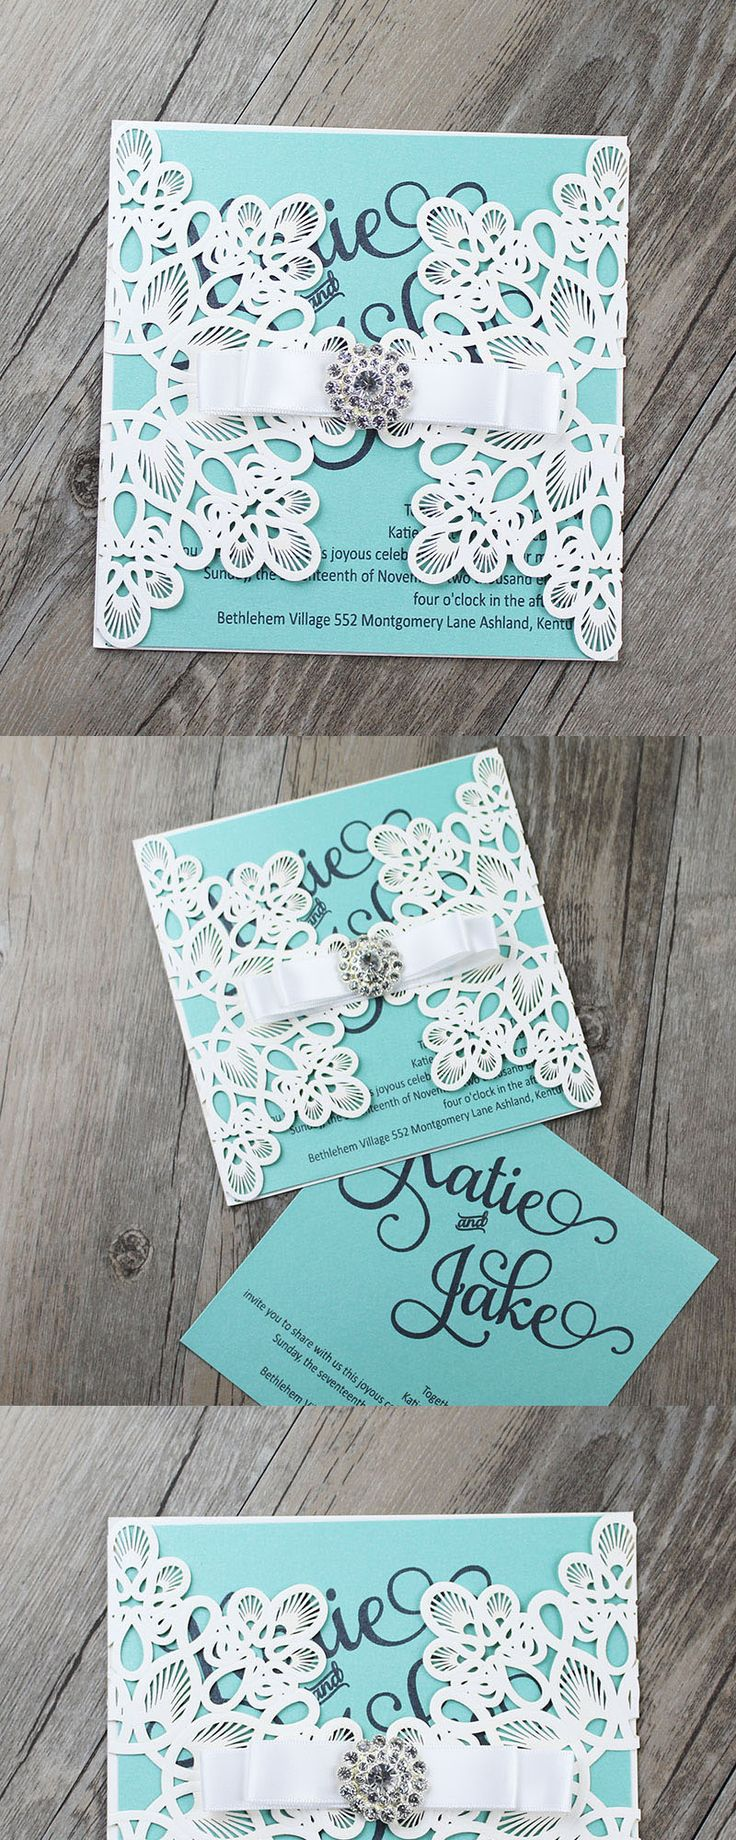 Tiffany Blue Invitations, Tiffany Blue Wedding Invitations, Tiffany Blue  Laser Cut Invitations